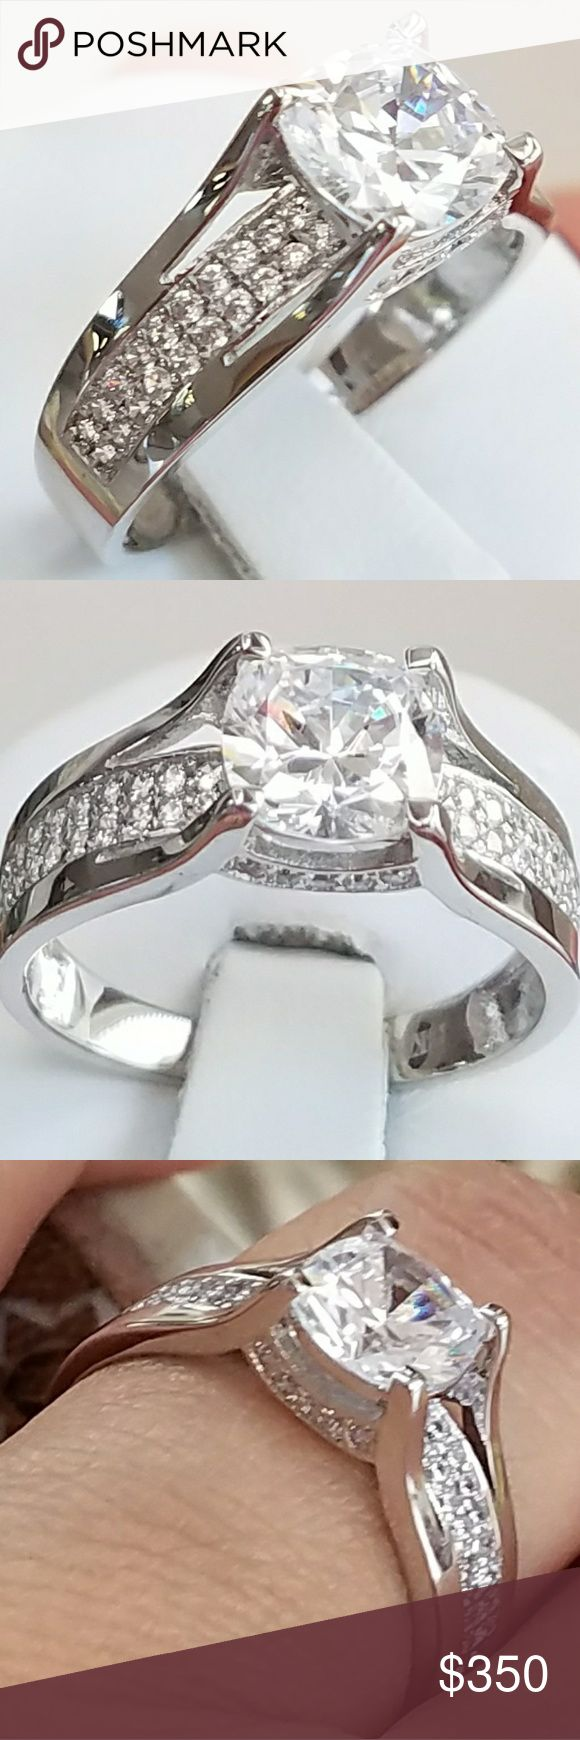 14k Solid White Gold Engagement Ring 14k Real Solid White Gold Engagement Ring with 1ct simulated man made Diamond Center stone. Total Karat is 1.5ct Available in sizes 5 6 7 8 9 Jewelry Rings